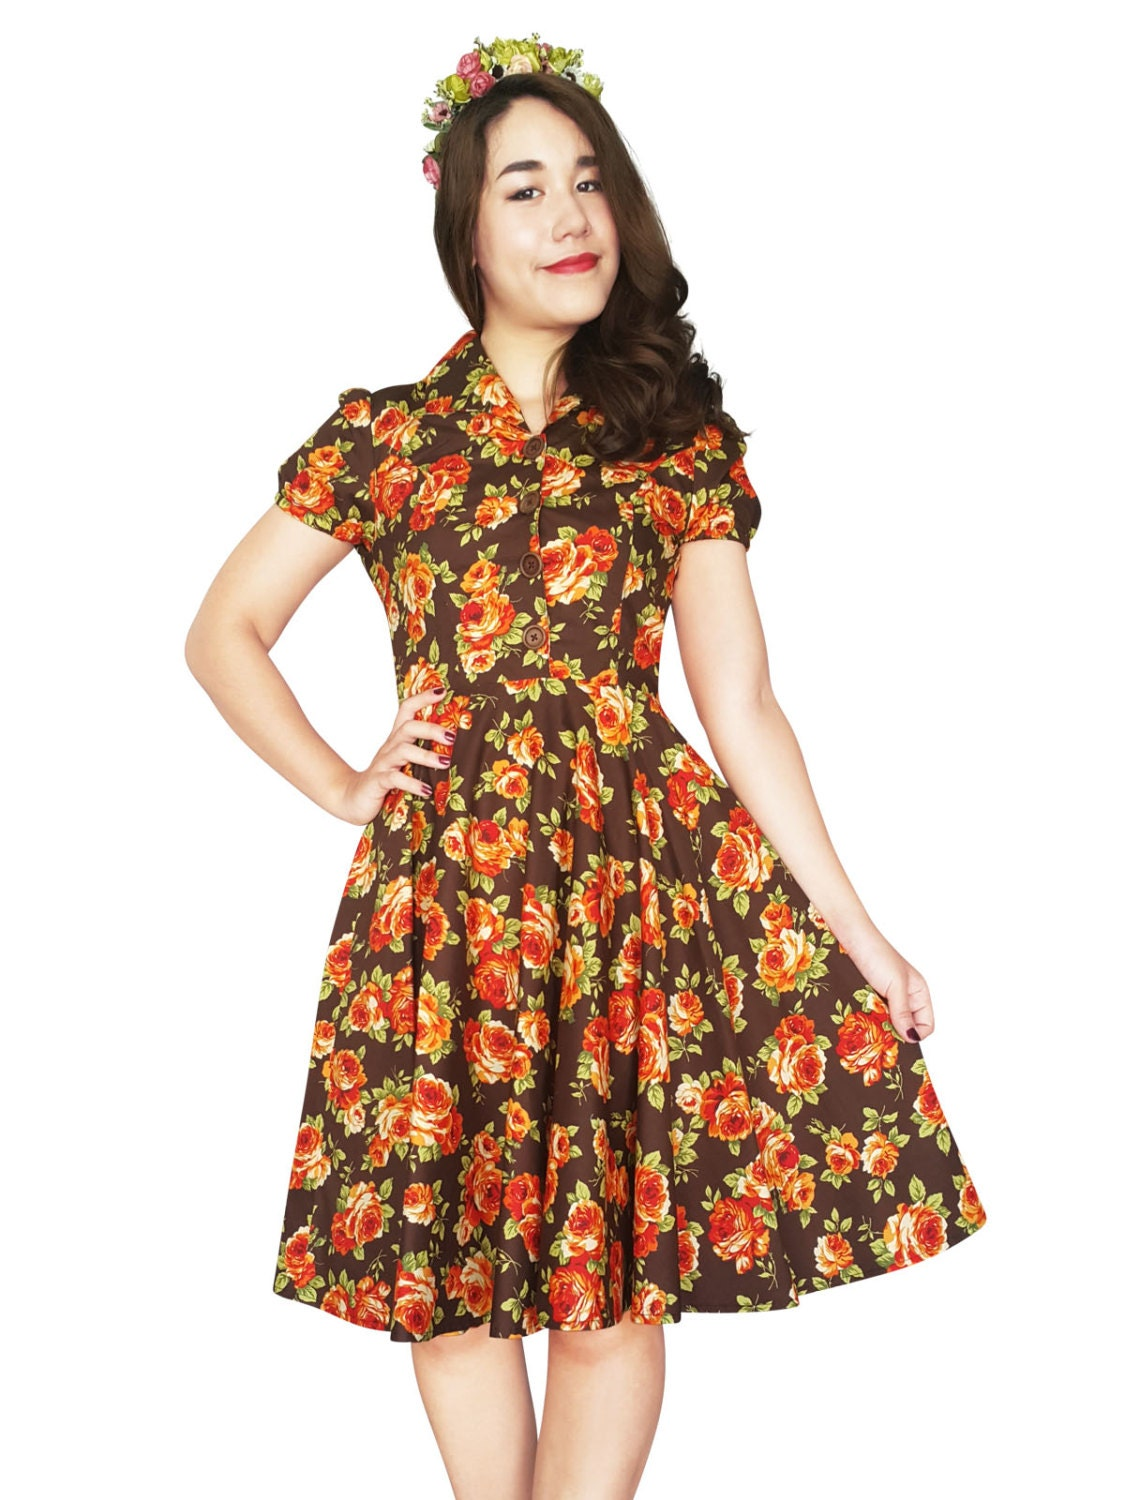 Brown Vintage Floral Dress Plus Size Dress Summer Dress Orange